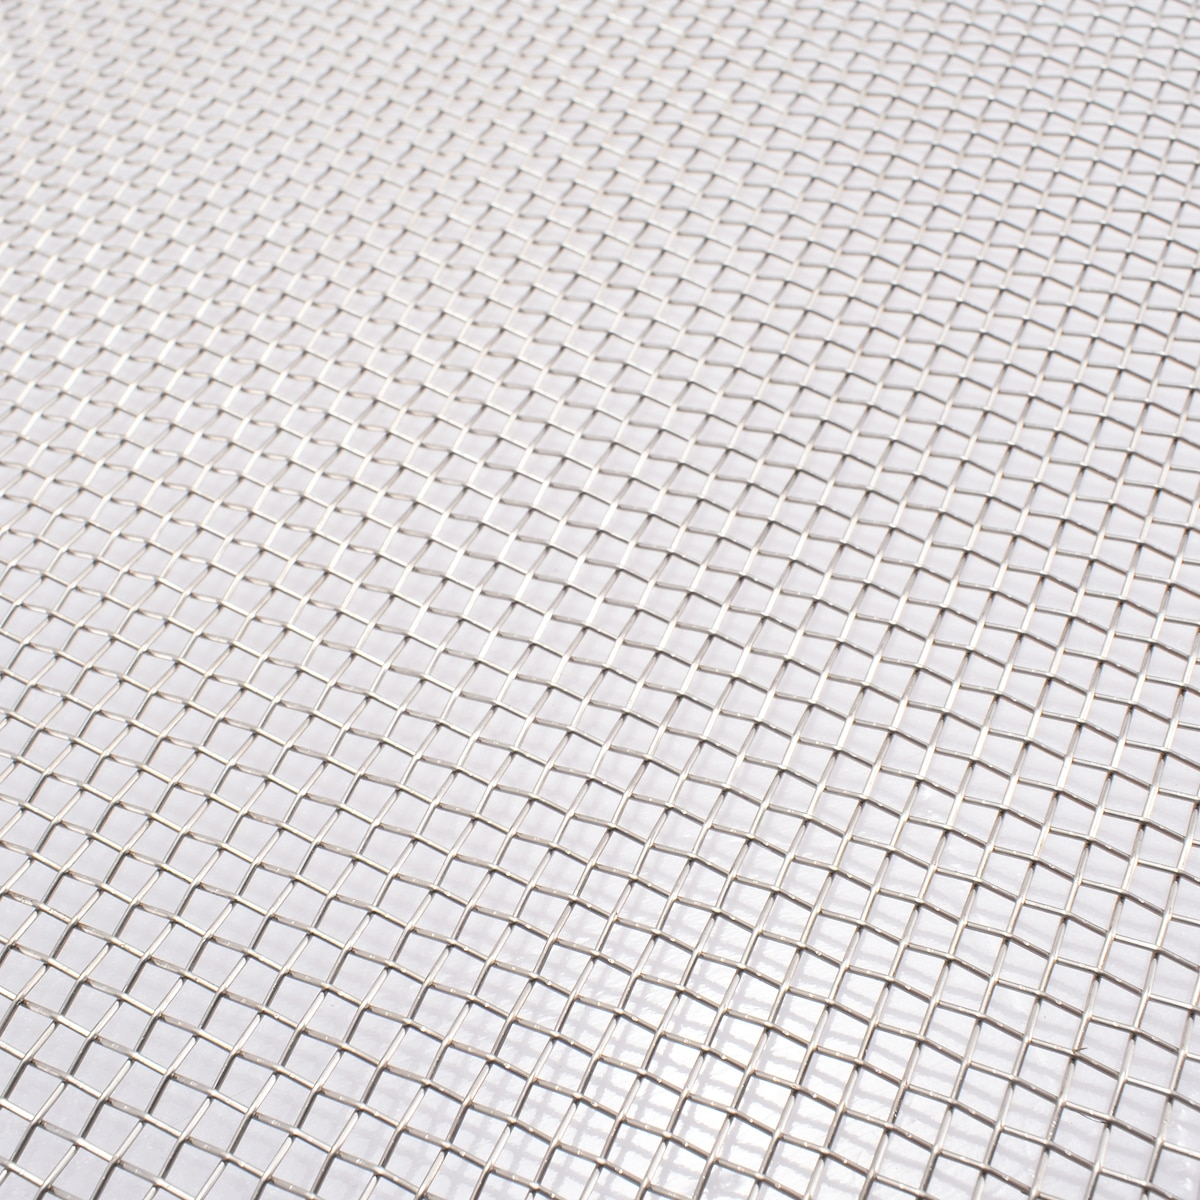 Non-toxic 304 Stainless Steel Mesh 8 Mesh Filtration 30cm * 60cm #8 .035 Wire Cloth Screen Filter 16